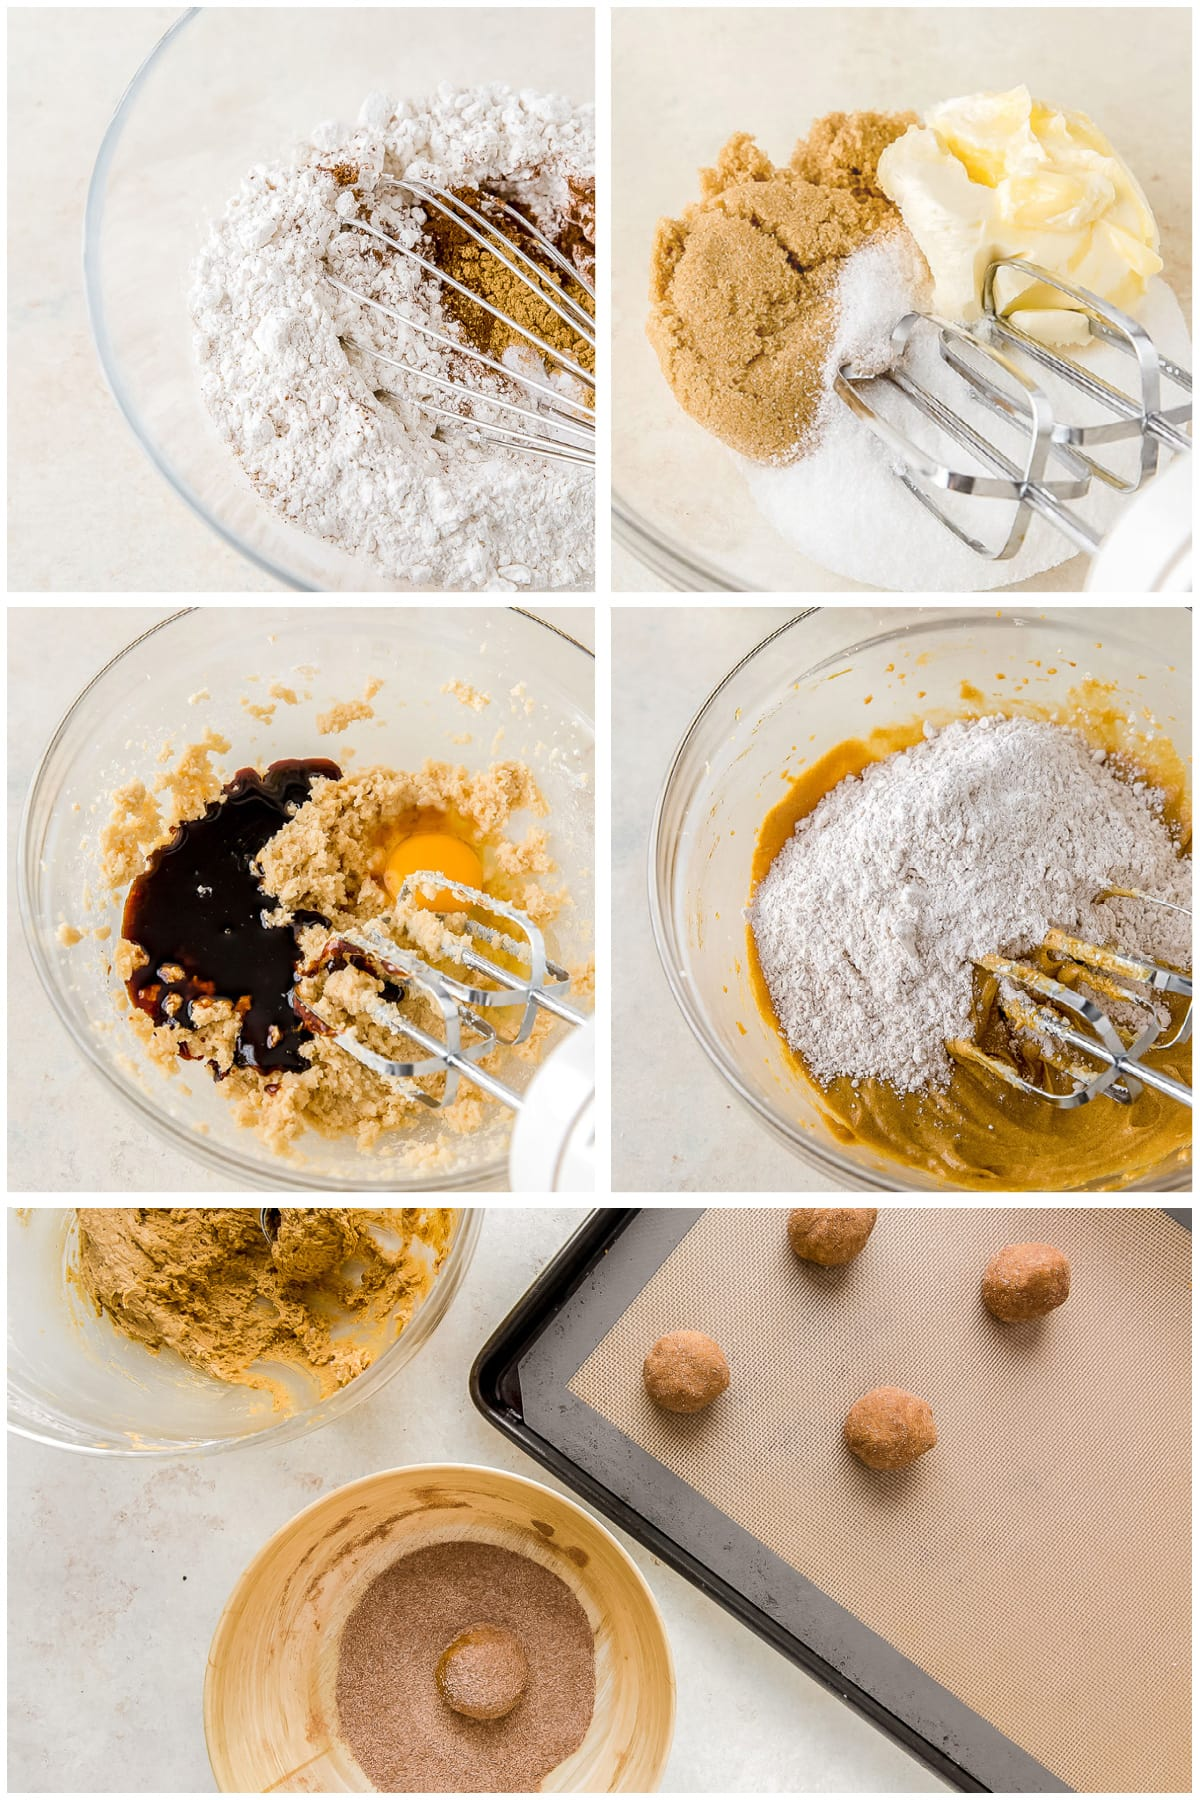 photo collage demonstrating how to make ginger molasses cookies in a mixing bowl with hand mixer